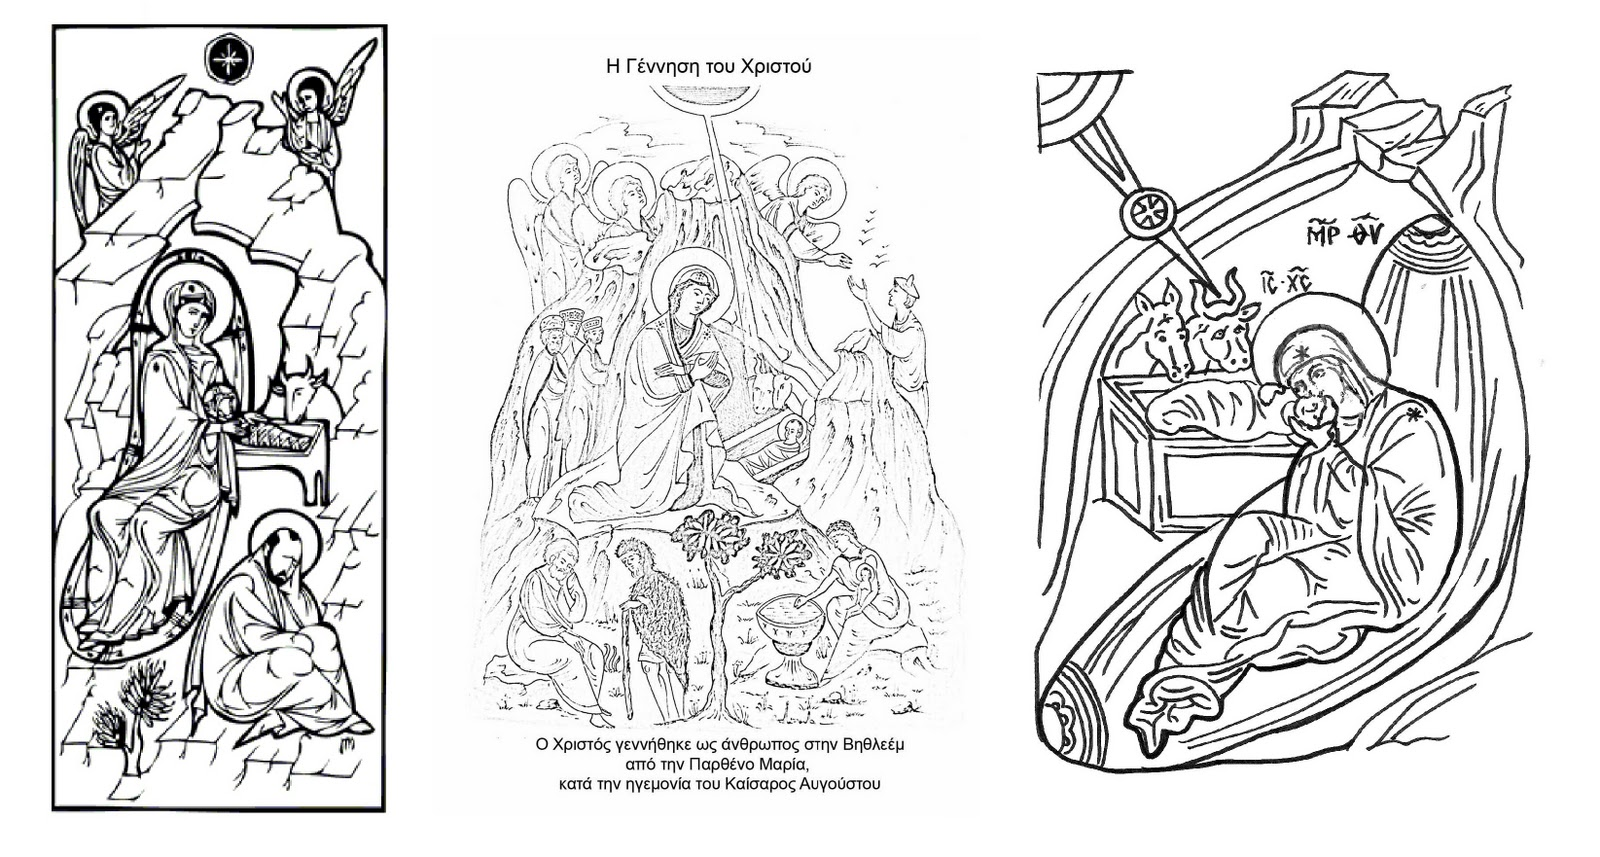 Christmas Educational Coloring Pages With Orthodox Christian Education Symbolism